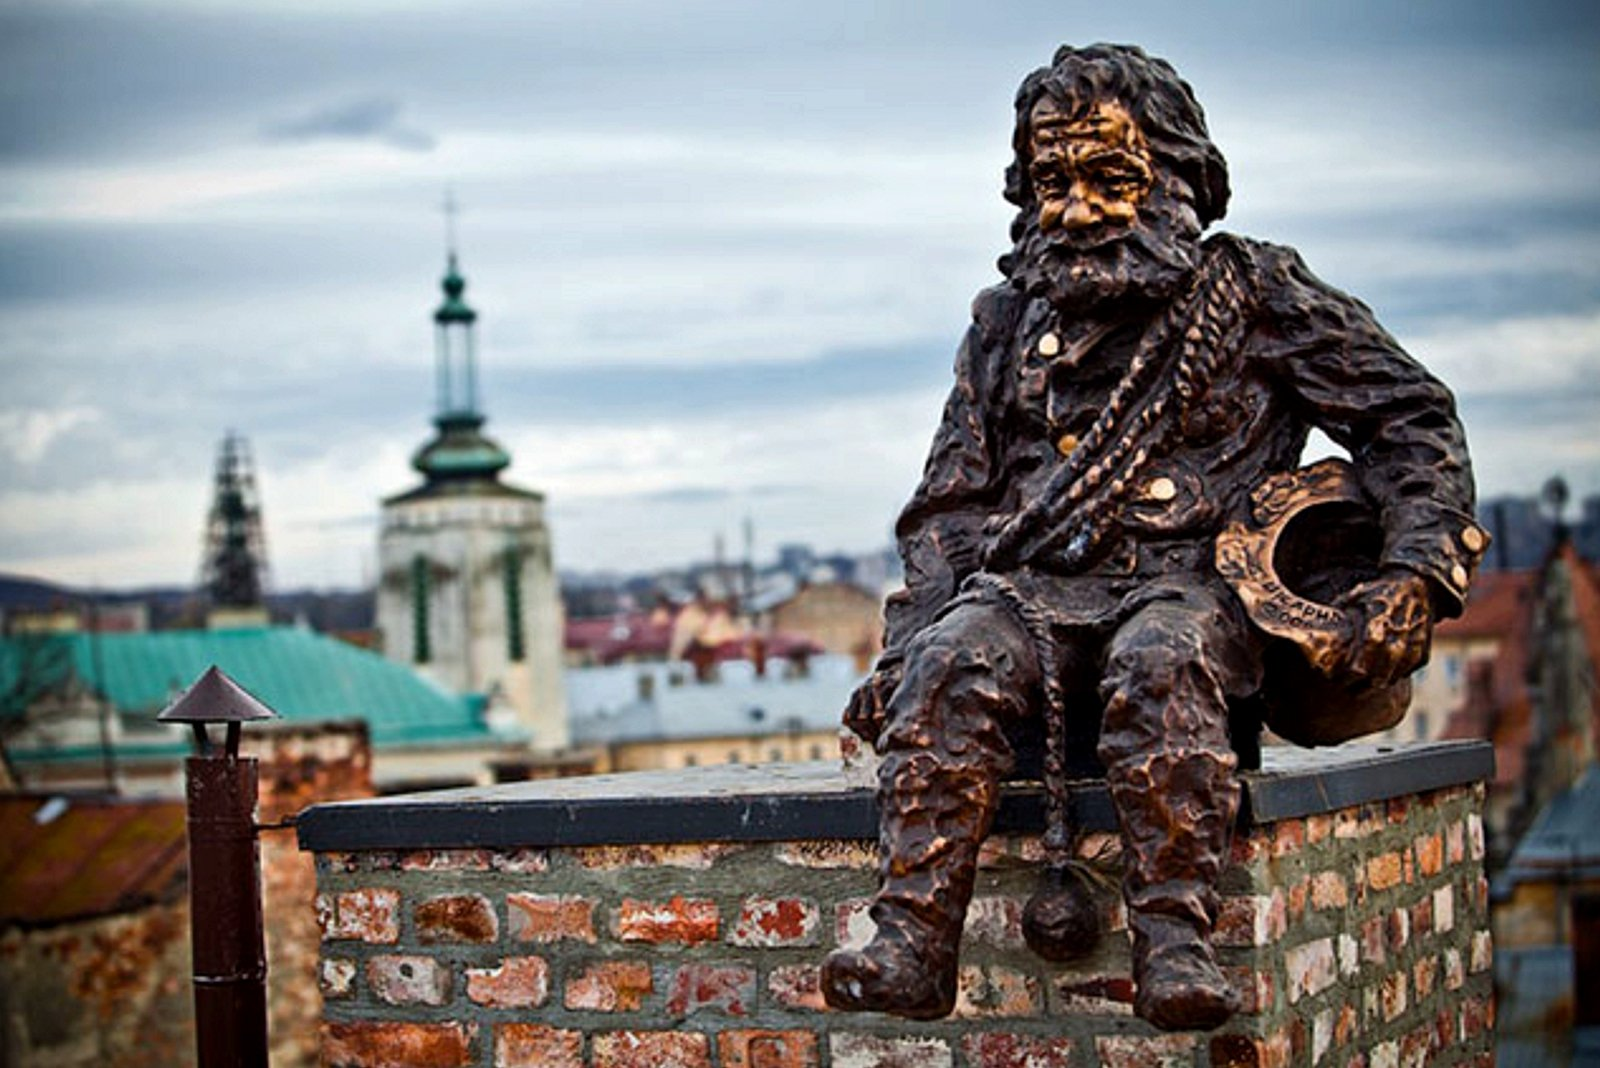 How to make a wish at the pipe chimney monument in Lviv